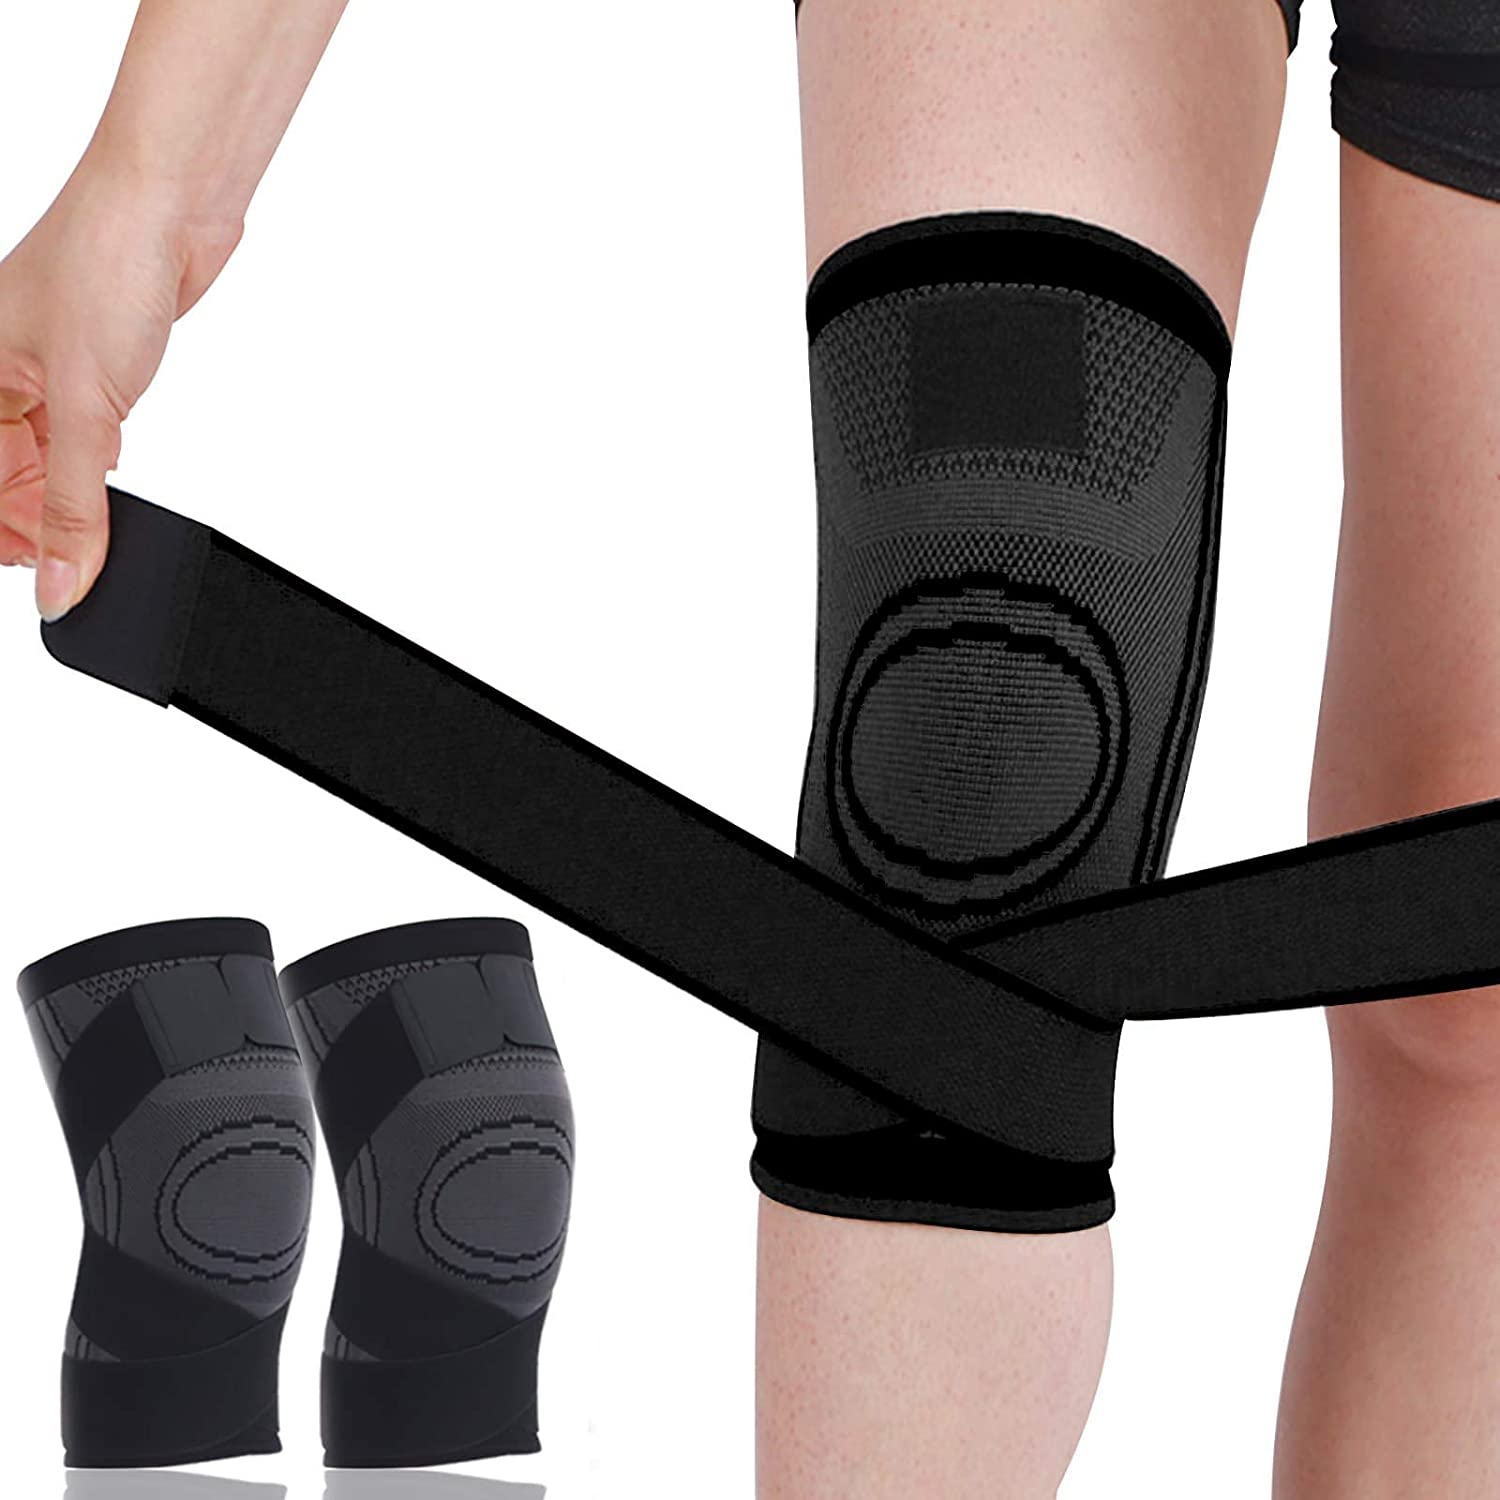 Support-Protector Knee Sleeve Weightlifting Knee Pain Relief Breathable Non-slip Elastic Blend 2 Pack Compression Knee Brace For Men//Women Knee Support-copper For Running